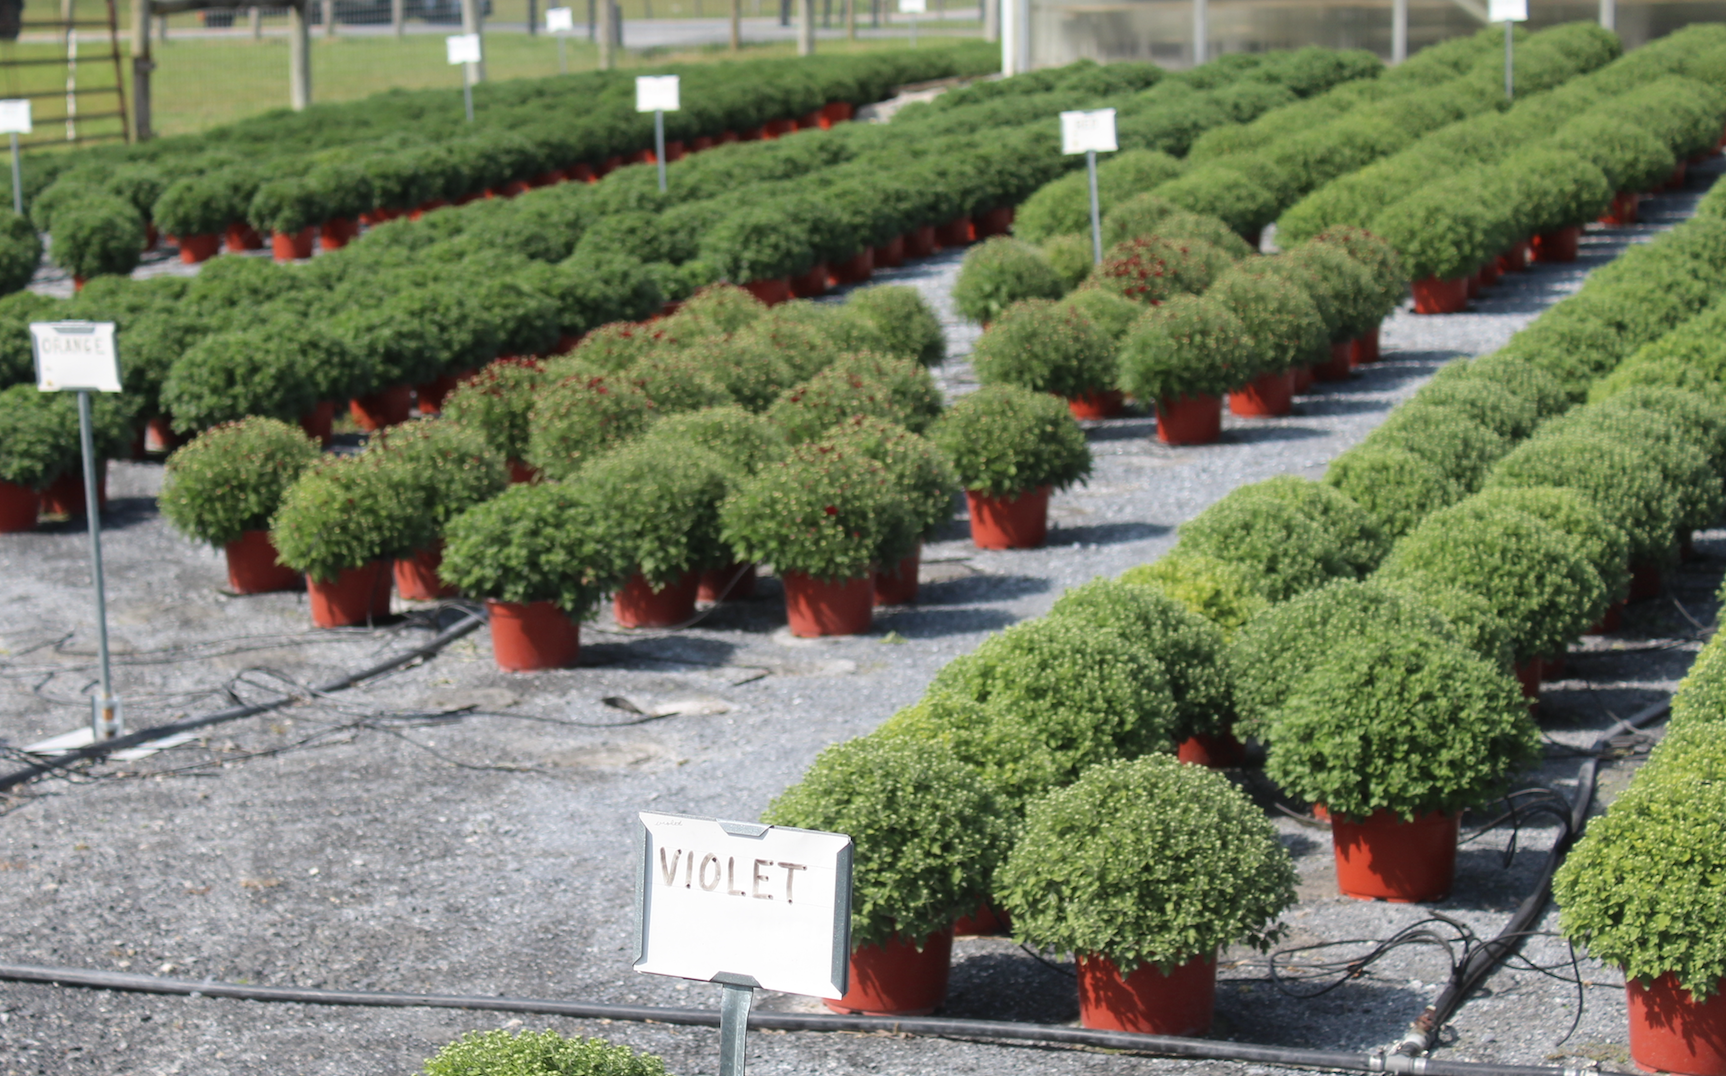 Willow Brook Greenhouse Family Owned & Operated Route 10 flower varieties plants garden supply flowers Home & Garden poinsettias pansies bedding plants Christmas season vegetable plants frames boxes succulents pots fertilizers locally owned